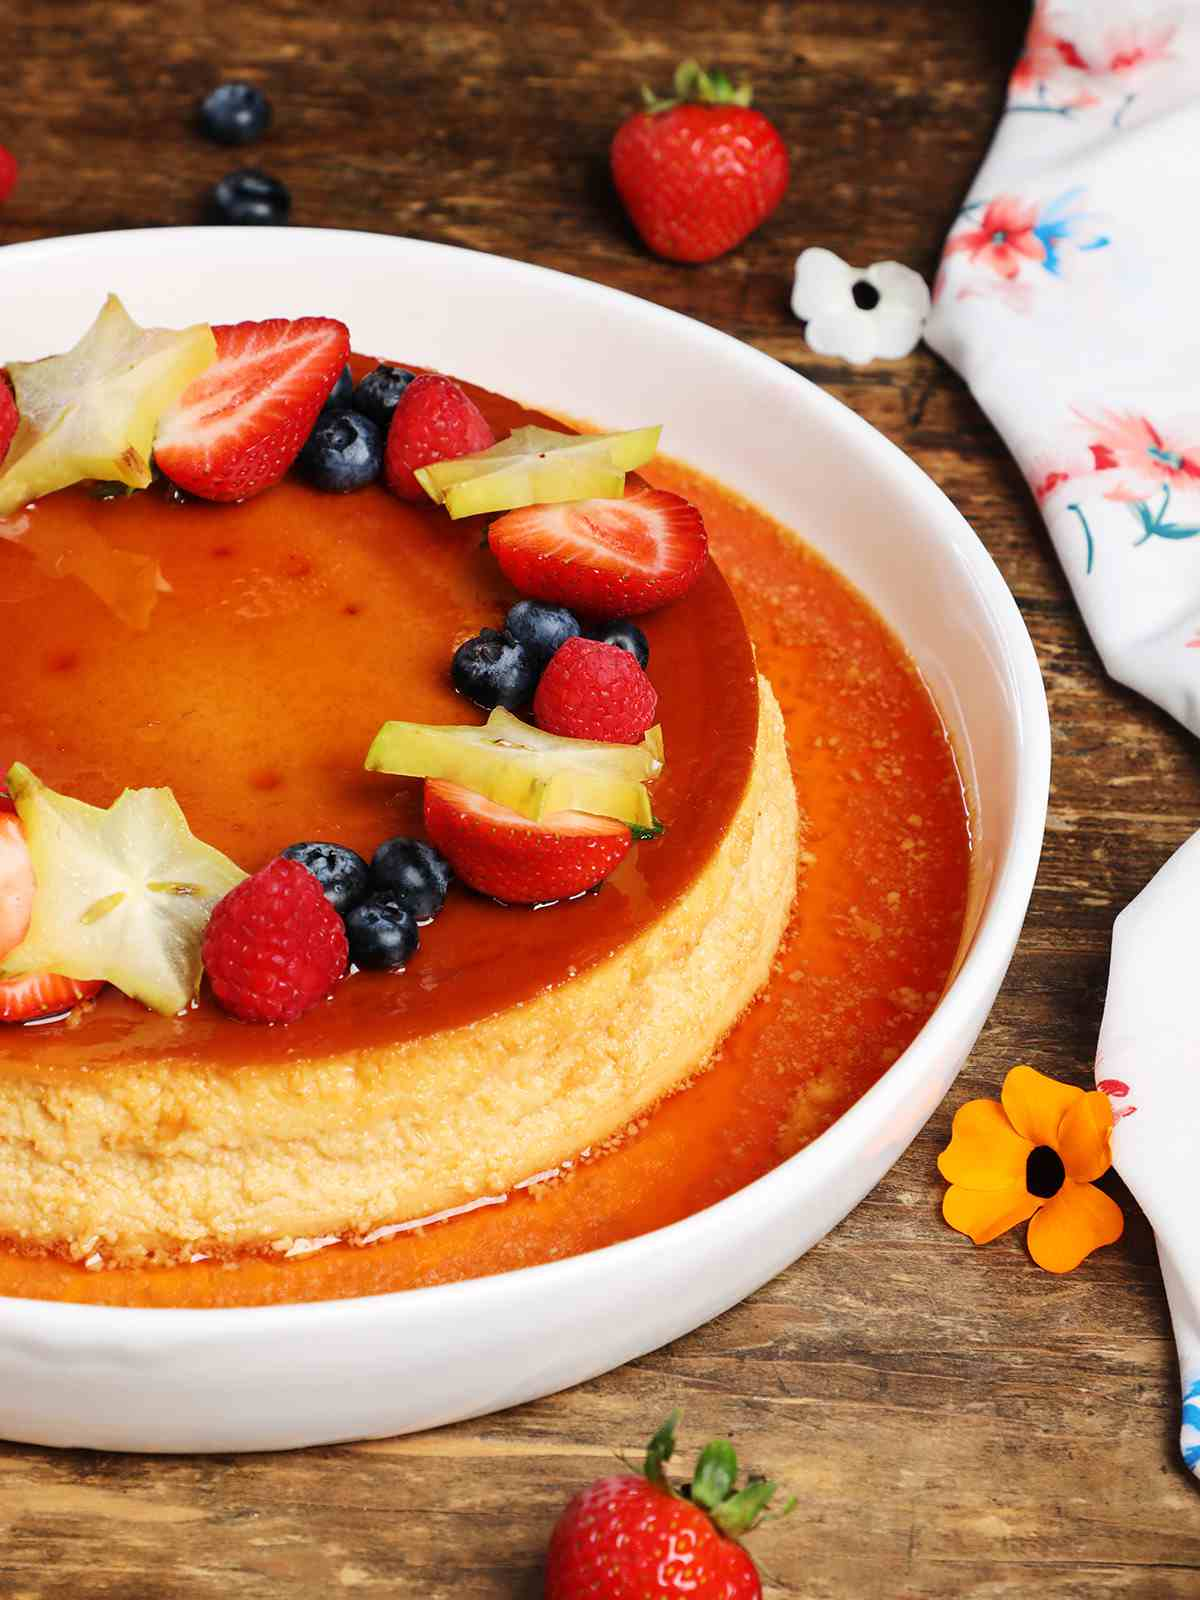 Mexican Flan topped with berries and star fruit